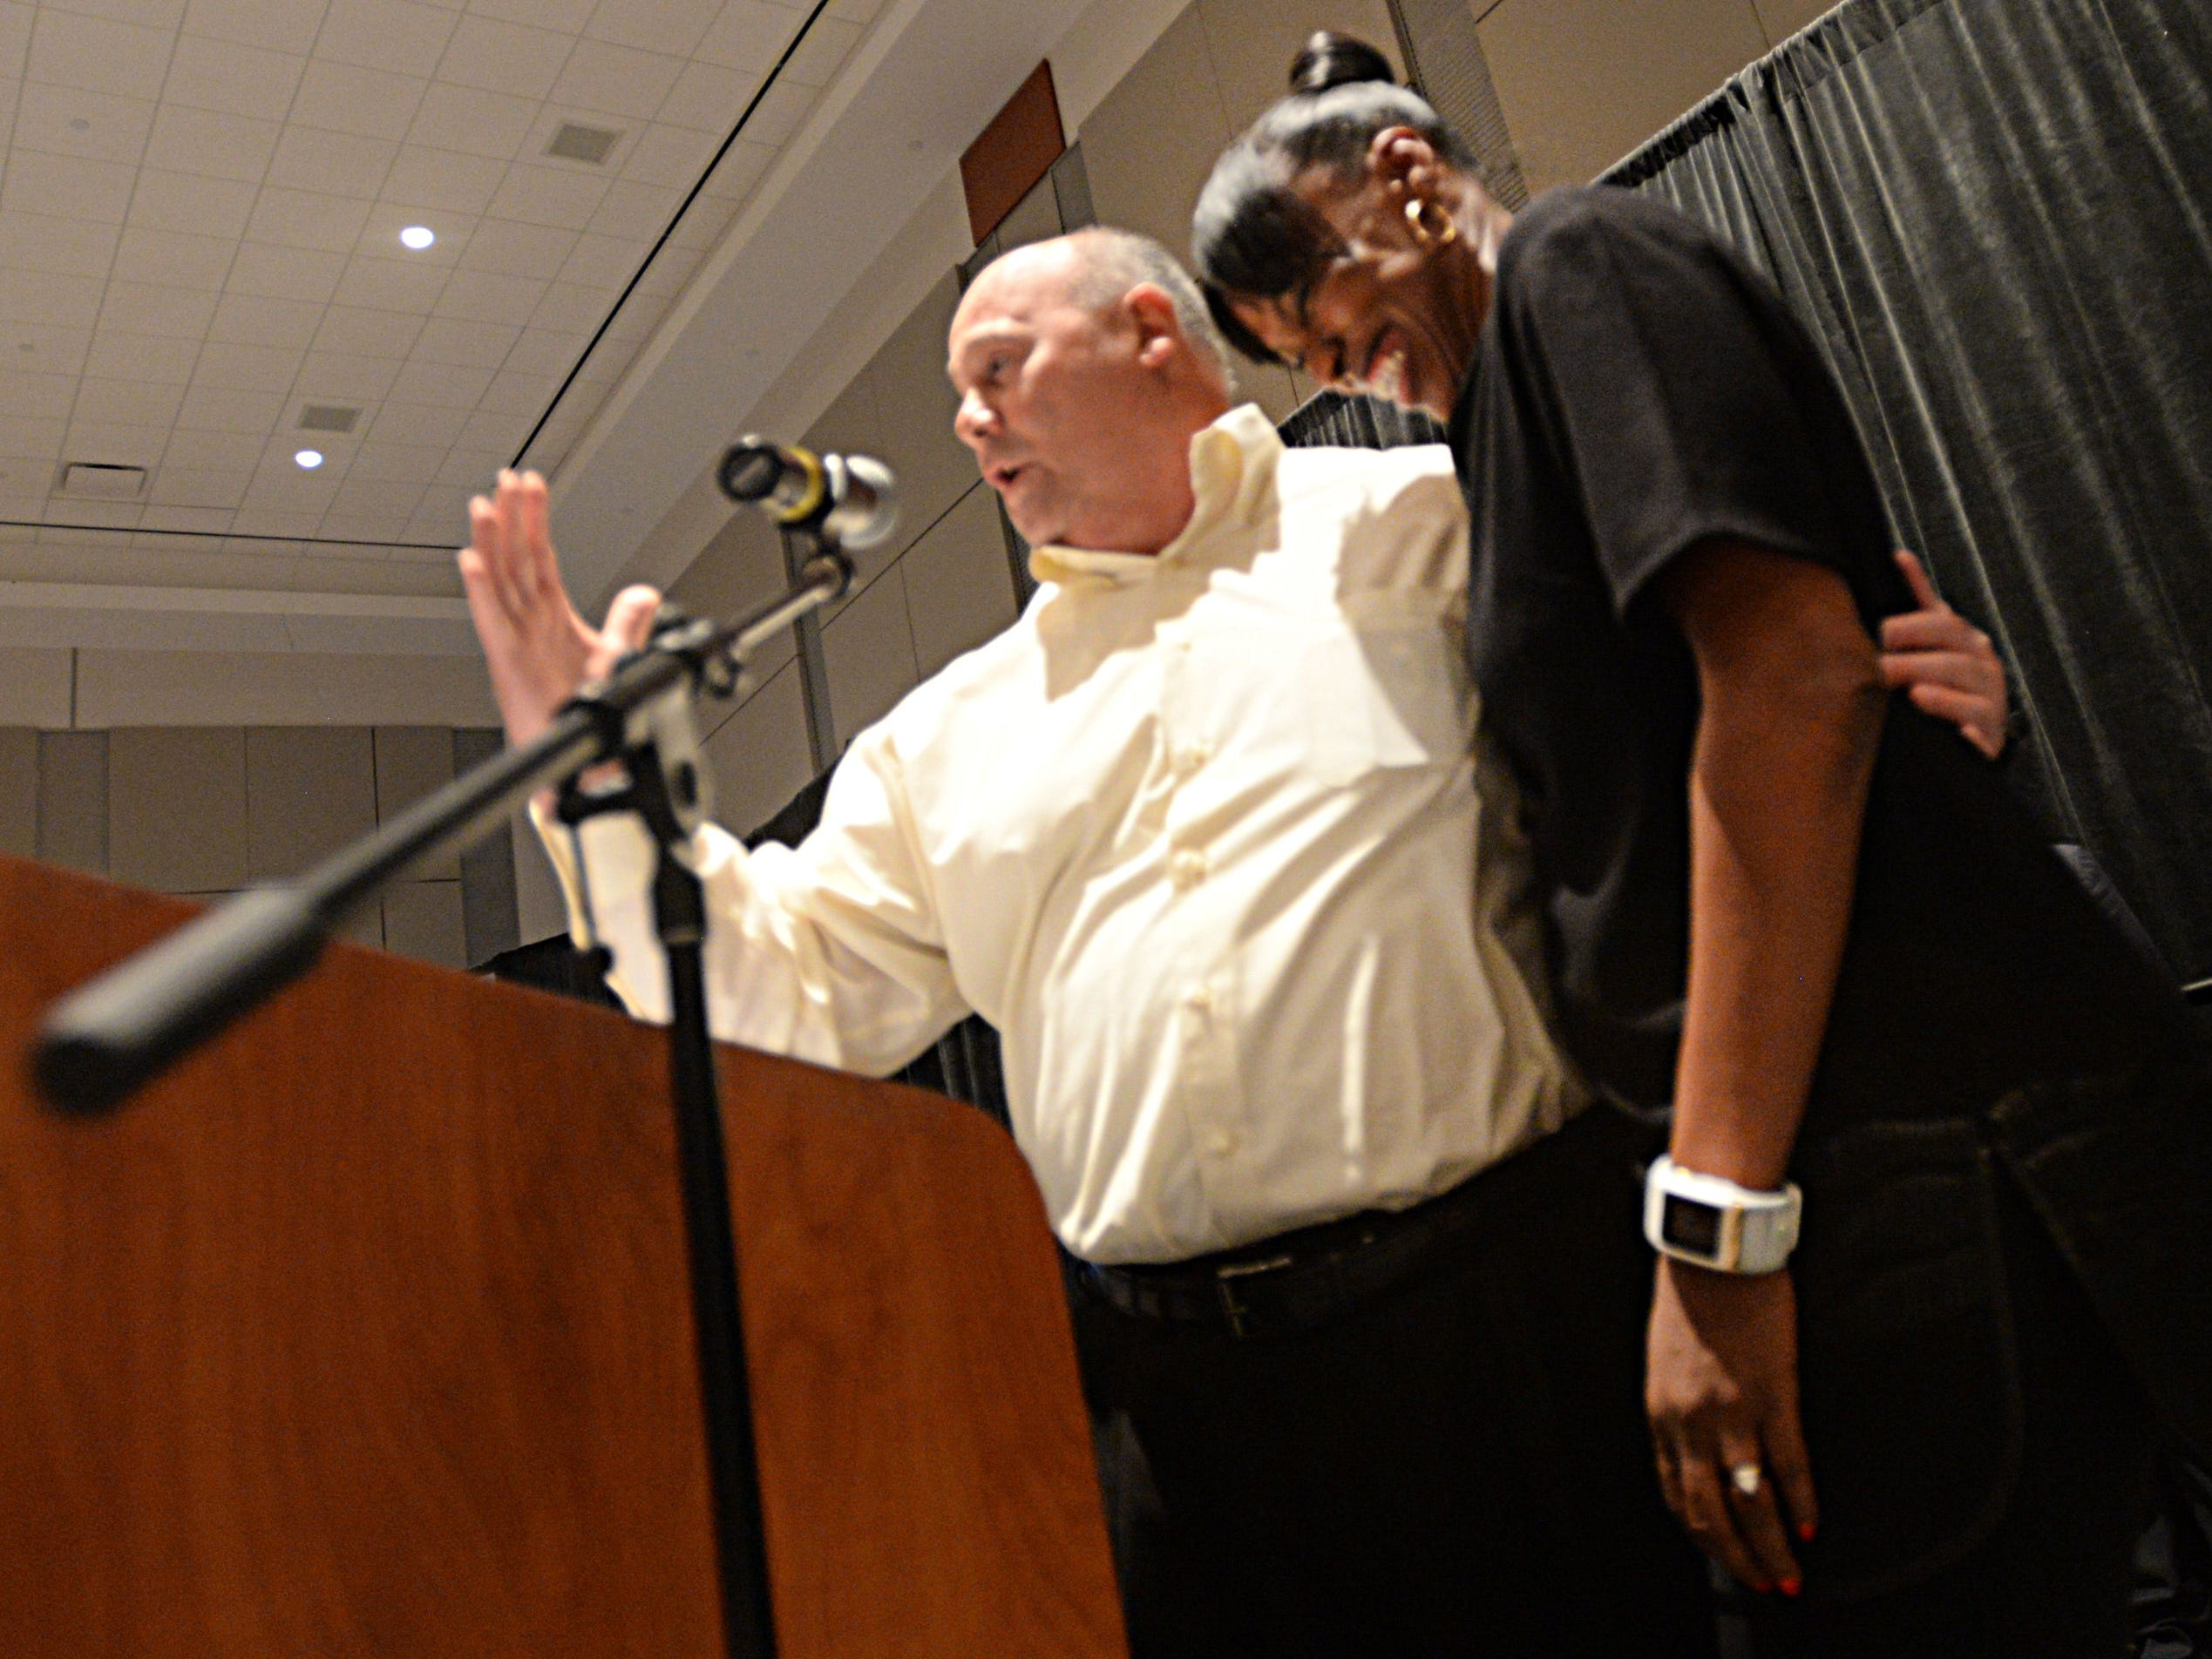 Calvary coach John Backman takes a moment to thank Jackie Joyner-Kersee for her speach.